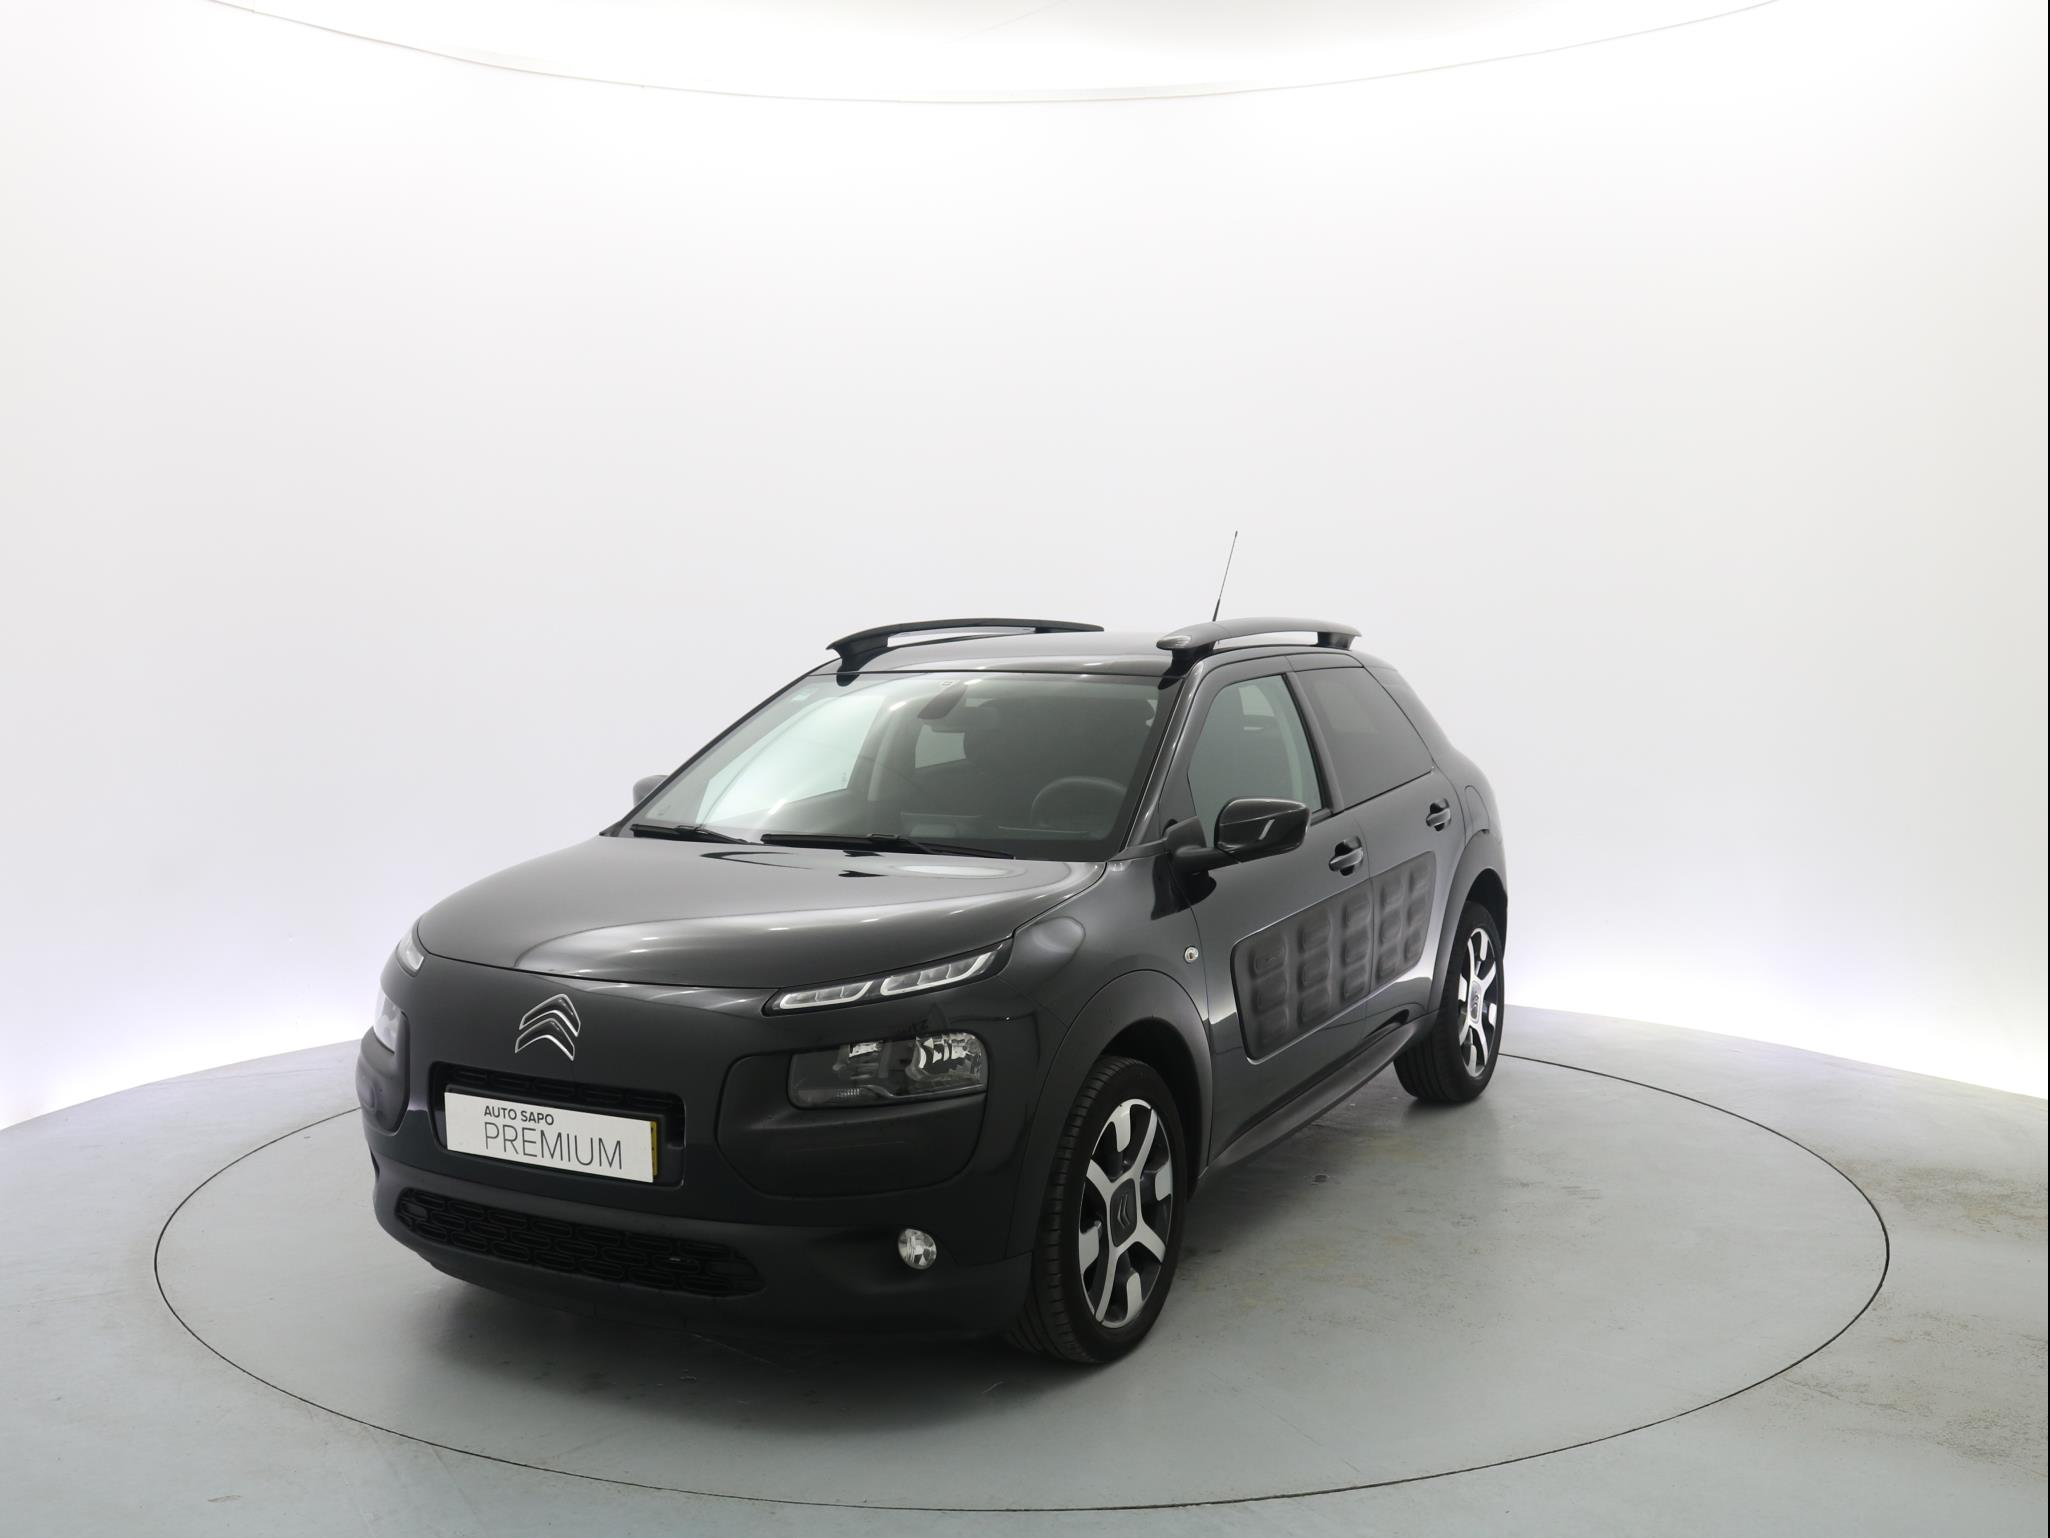 Citroen C4 Cactus 1.2 Pure Tech Feel  82cv